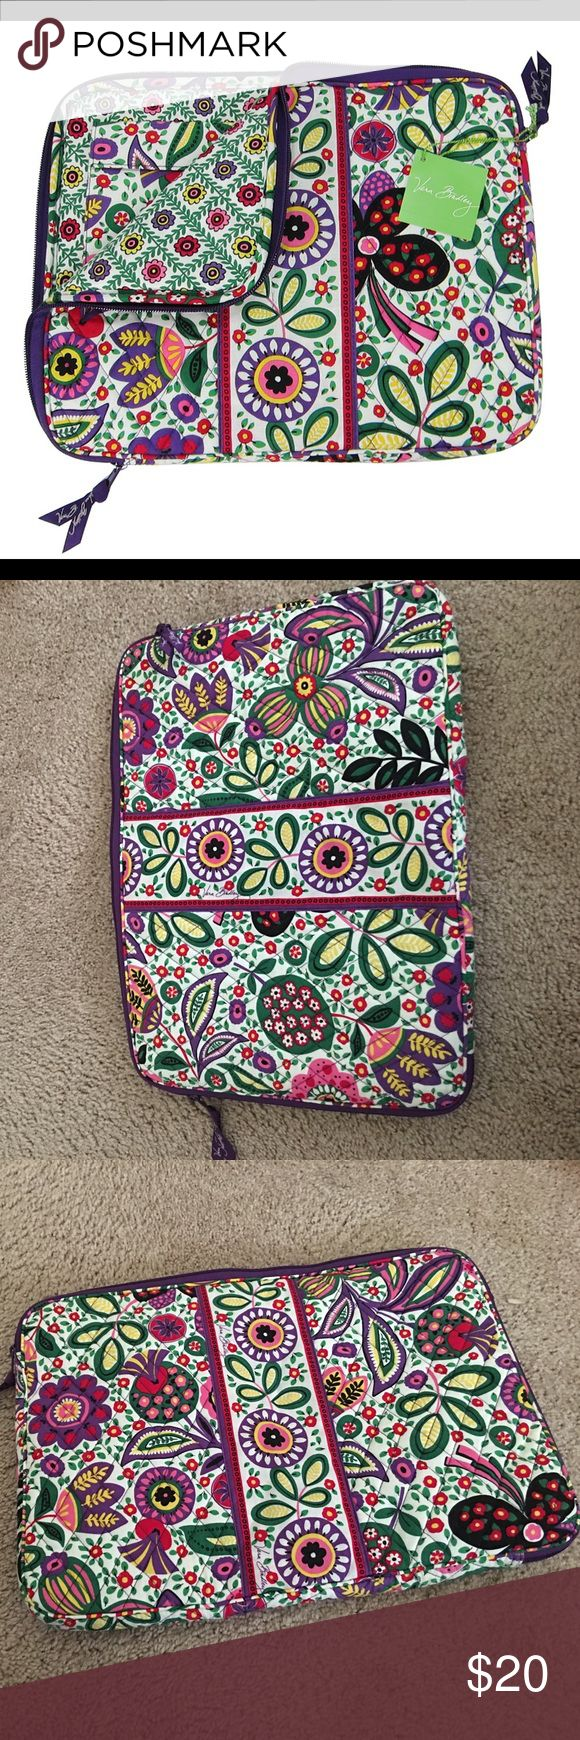 "Vera Bradley laptop bag In excellent condition! Like new. Barely used. Fits up to 15"" laptop. Vera Bradley Bags Laptop Bags"